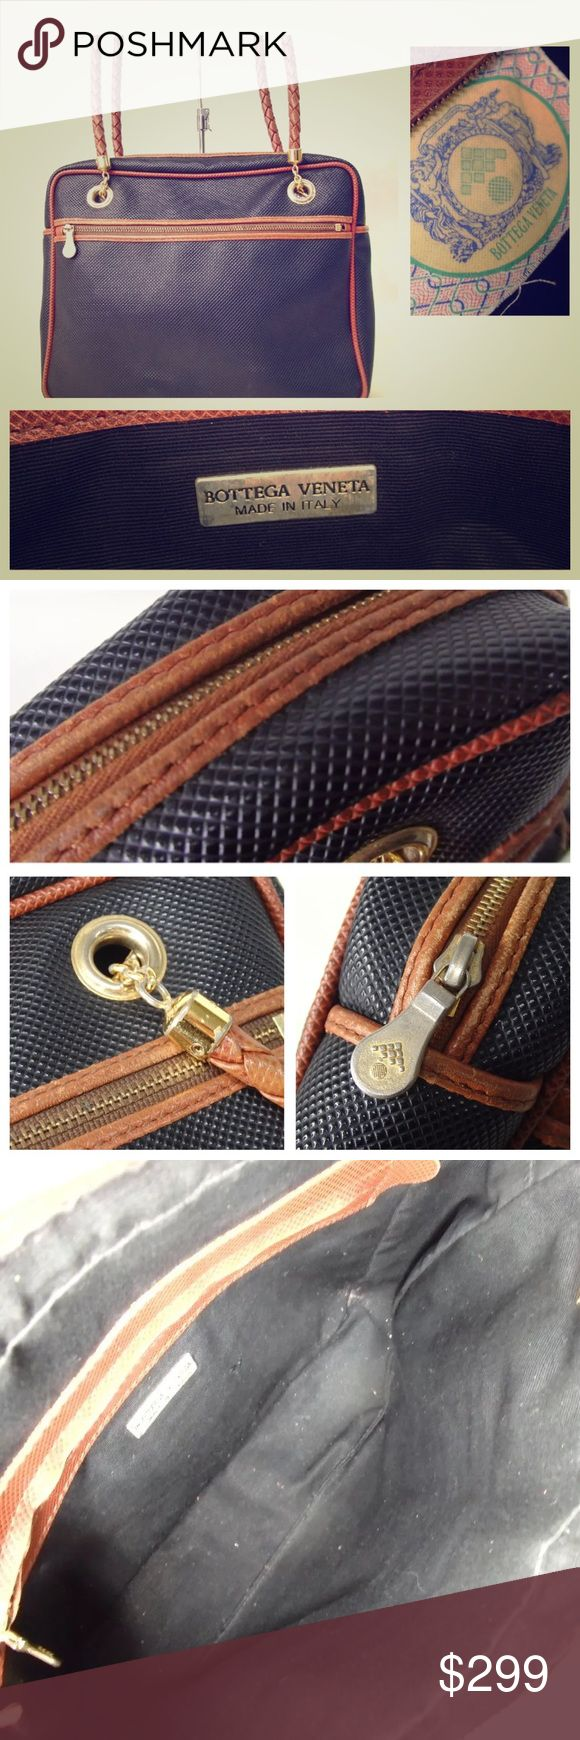 "BOTTEGA VENETA navy shoulder bag Guaranteed authentic preowned navy with gold hardware and brown signature braided straps.  In excellent used condition and is so versatile, a timeless bag that is great for year round use.  Measures 10.5 x 8 x 3"" strap 13""   Offers thru offers option only please Bottega Veneta Bags"